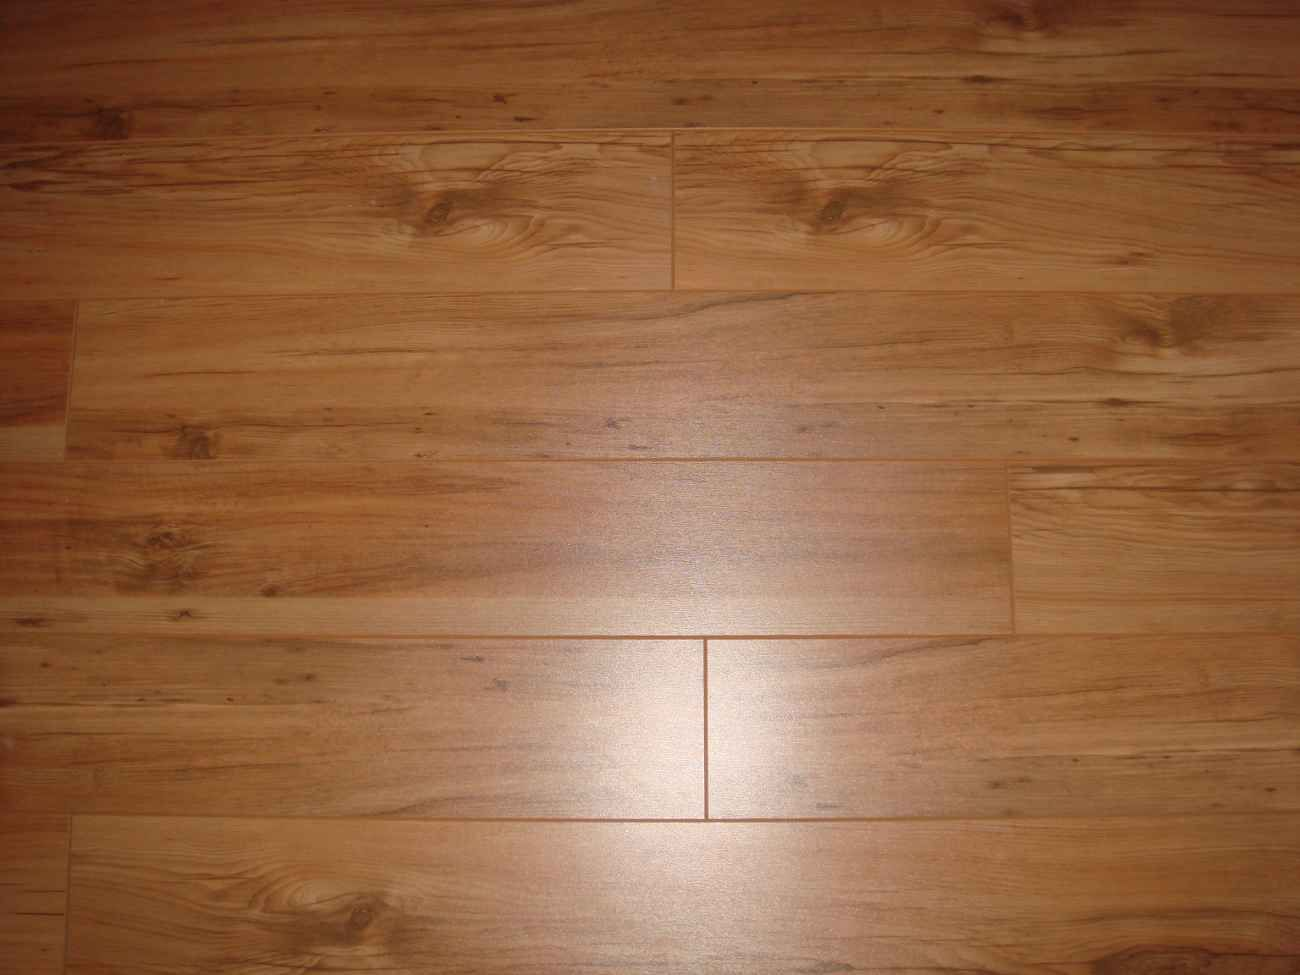 Wooden Ceramic Tile Floors  Feel The Home  Ceramic floor tiles